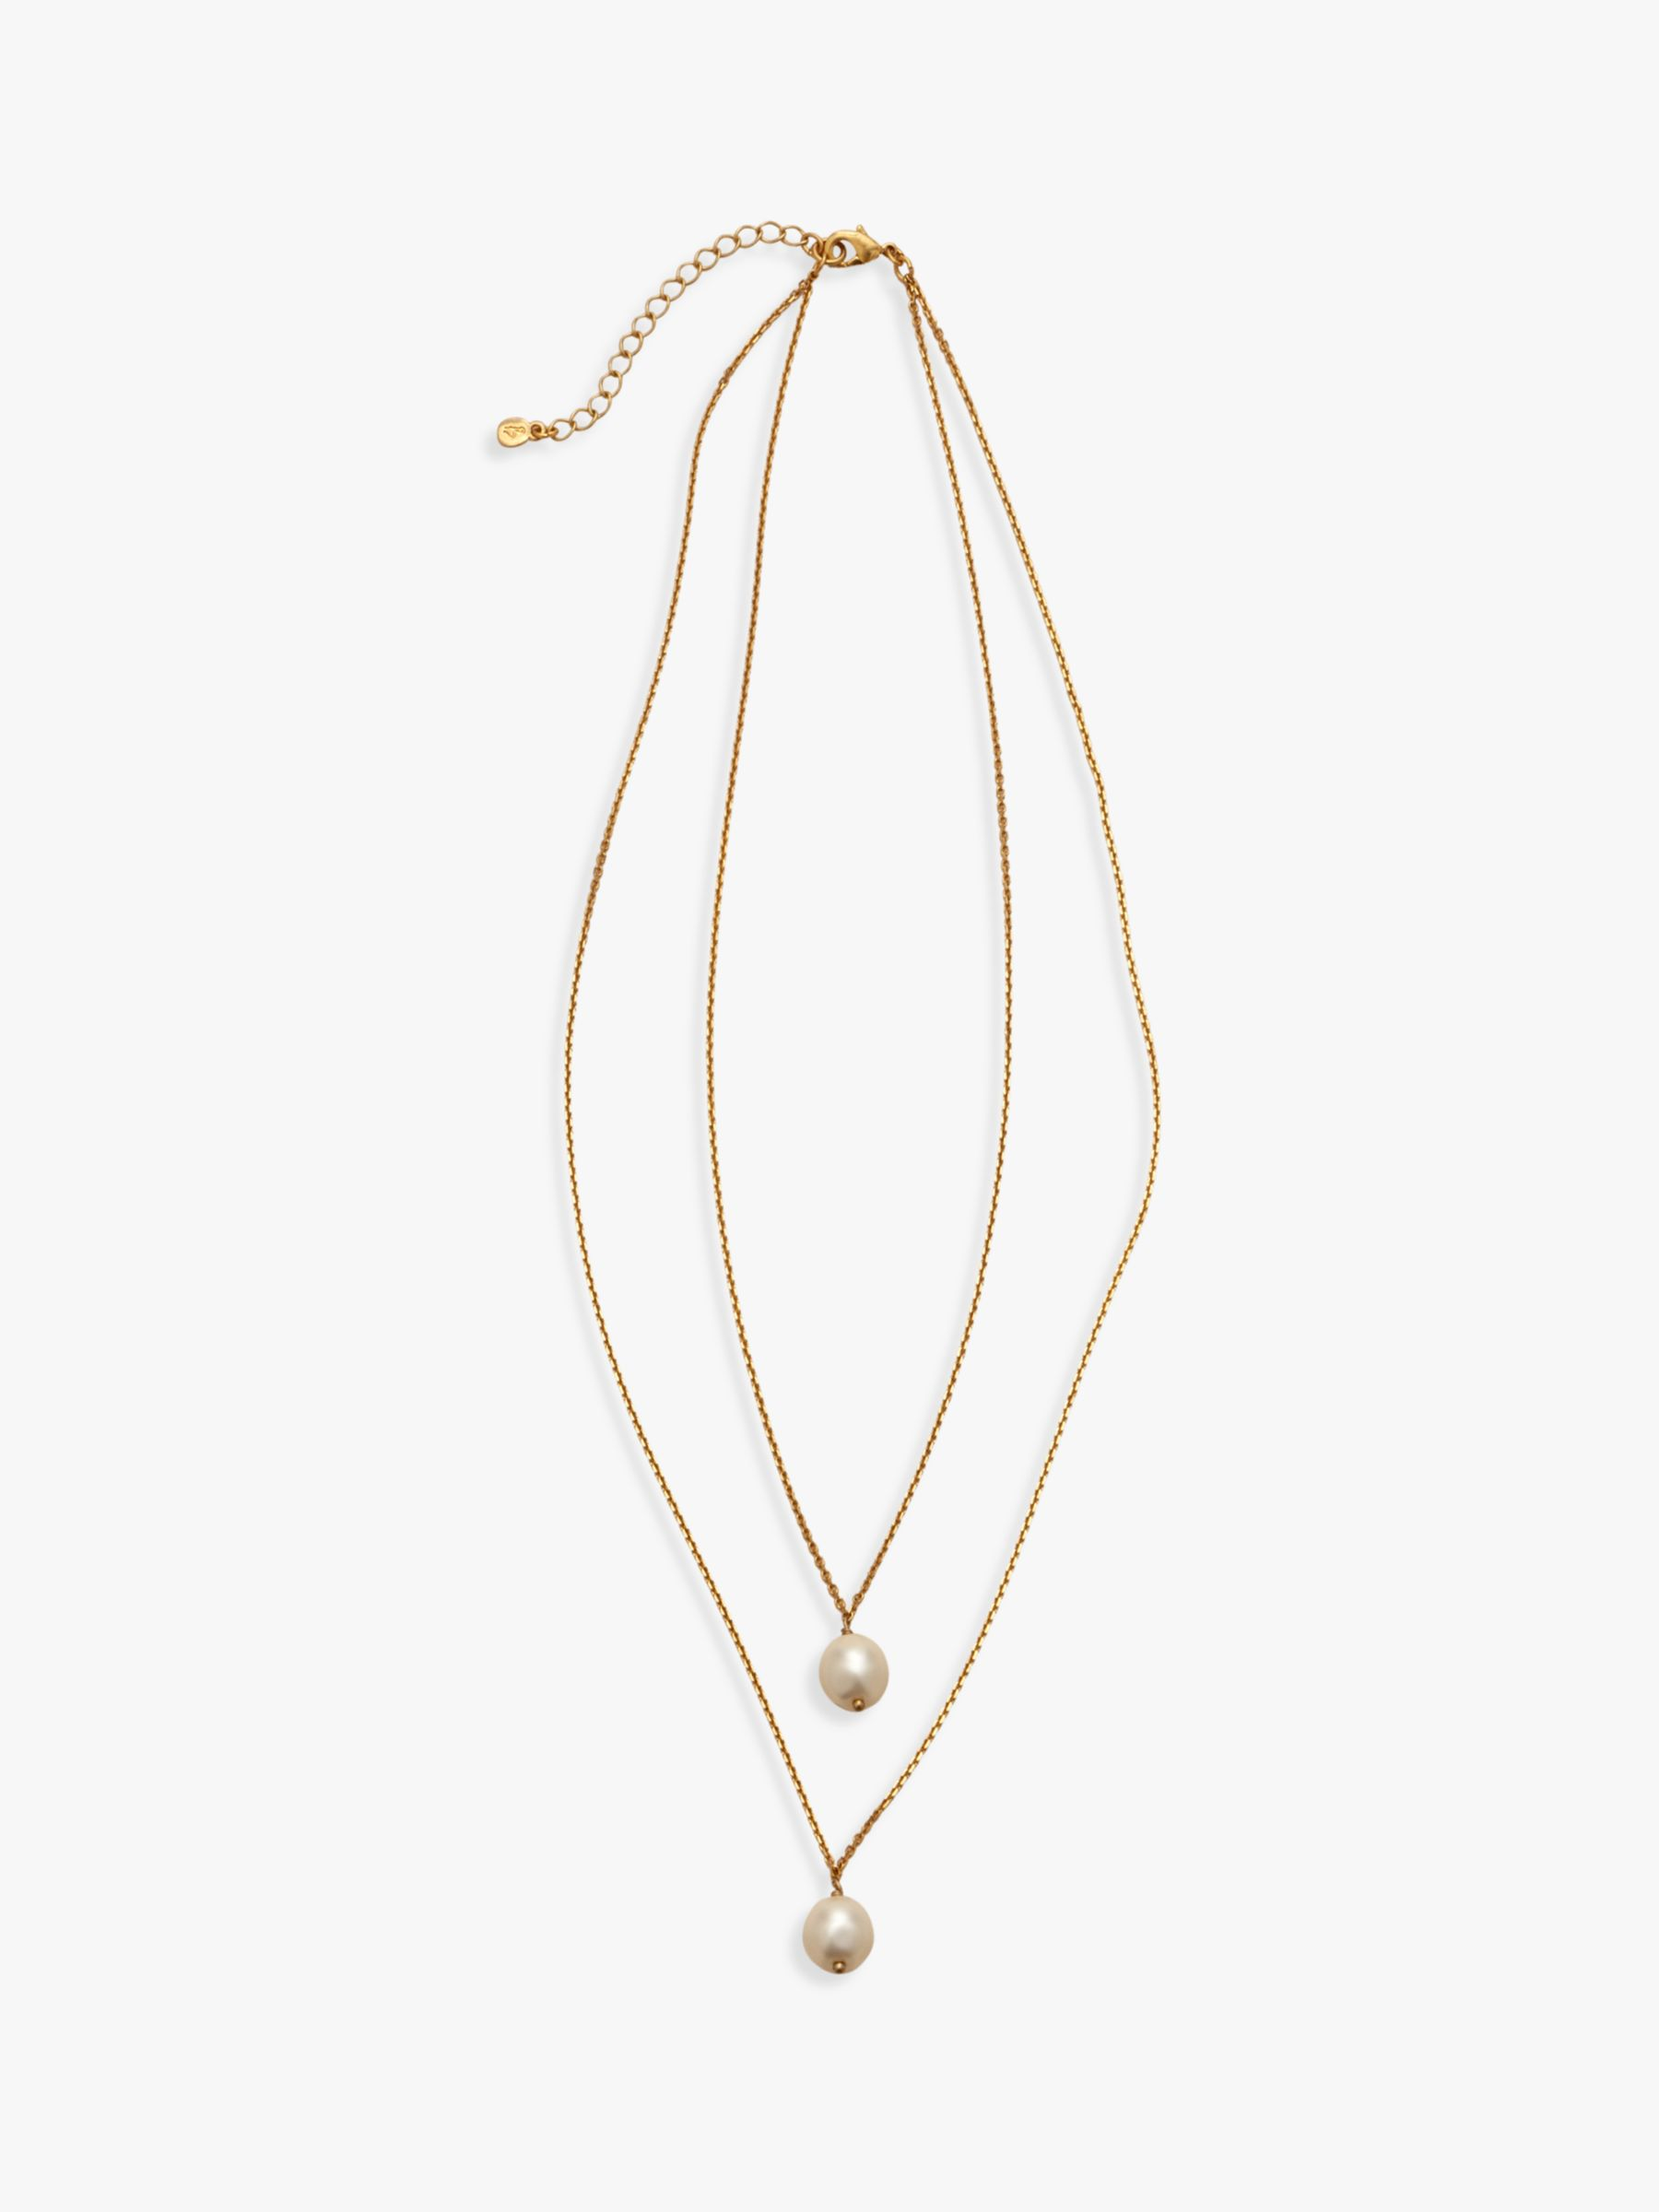 Boden Boden Faux Pearl Pendant Necklace, Glold